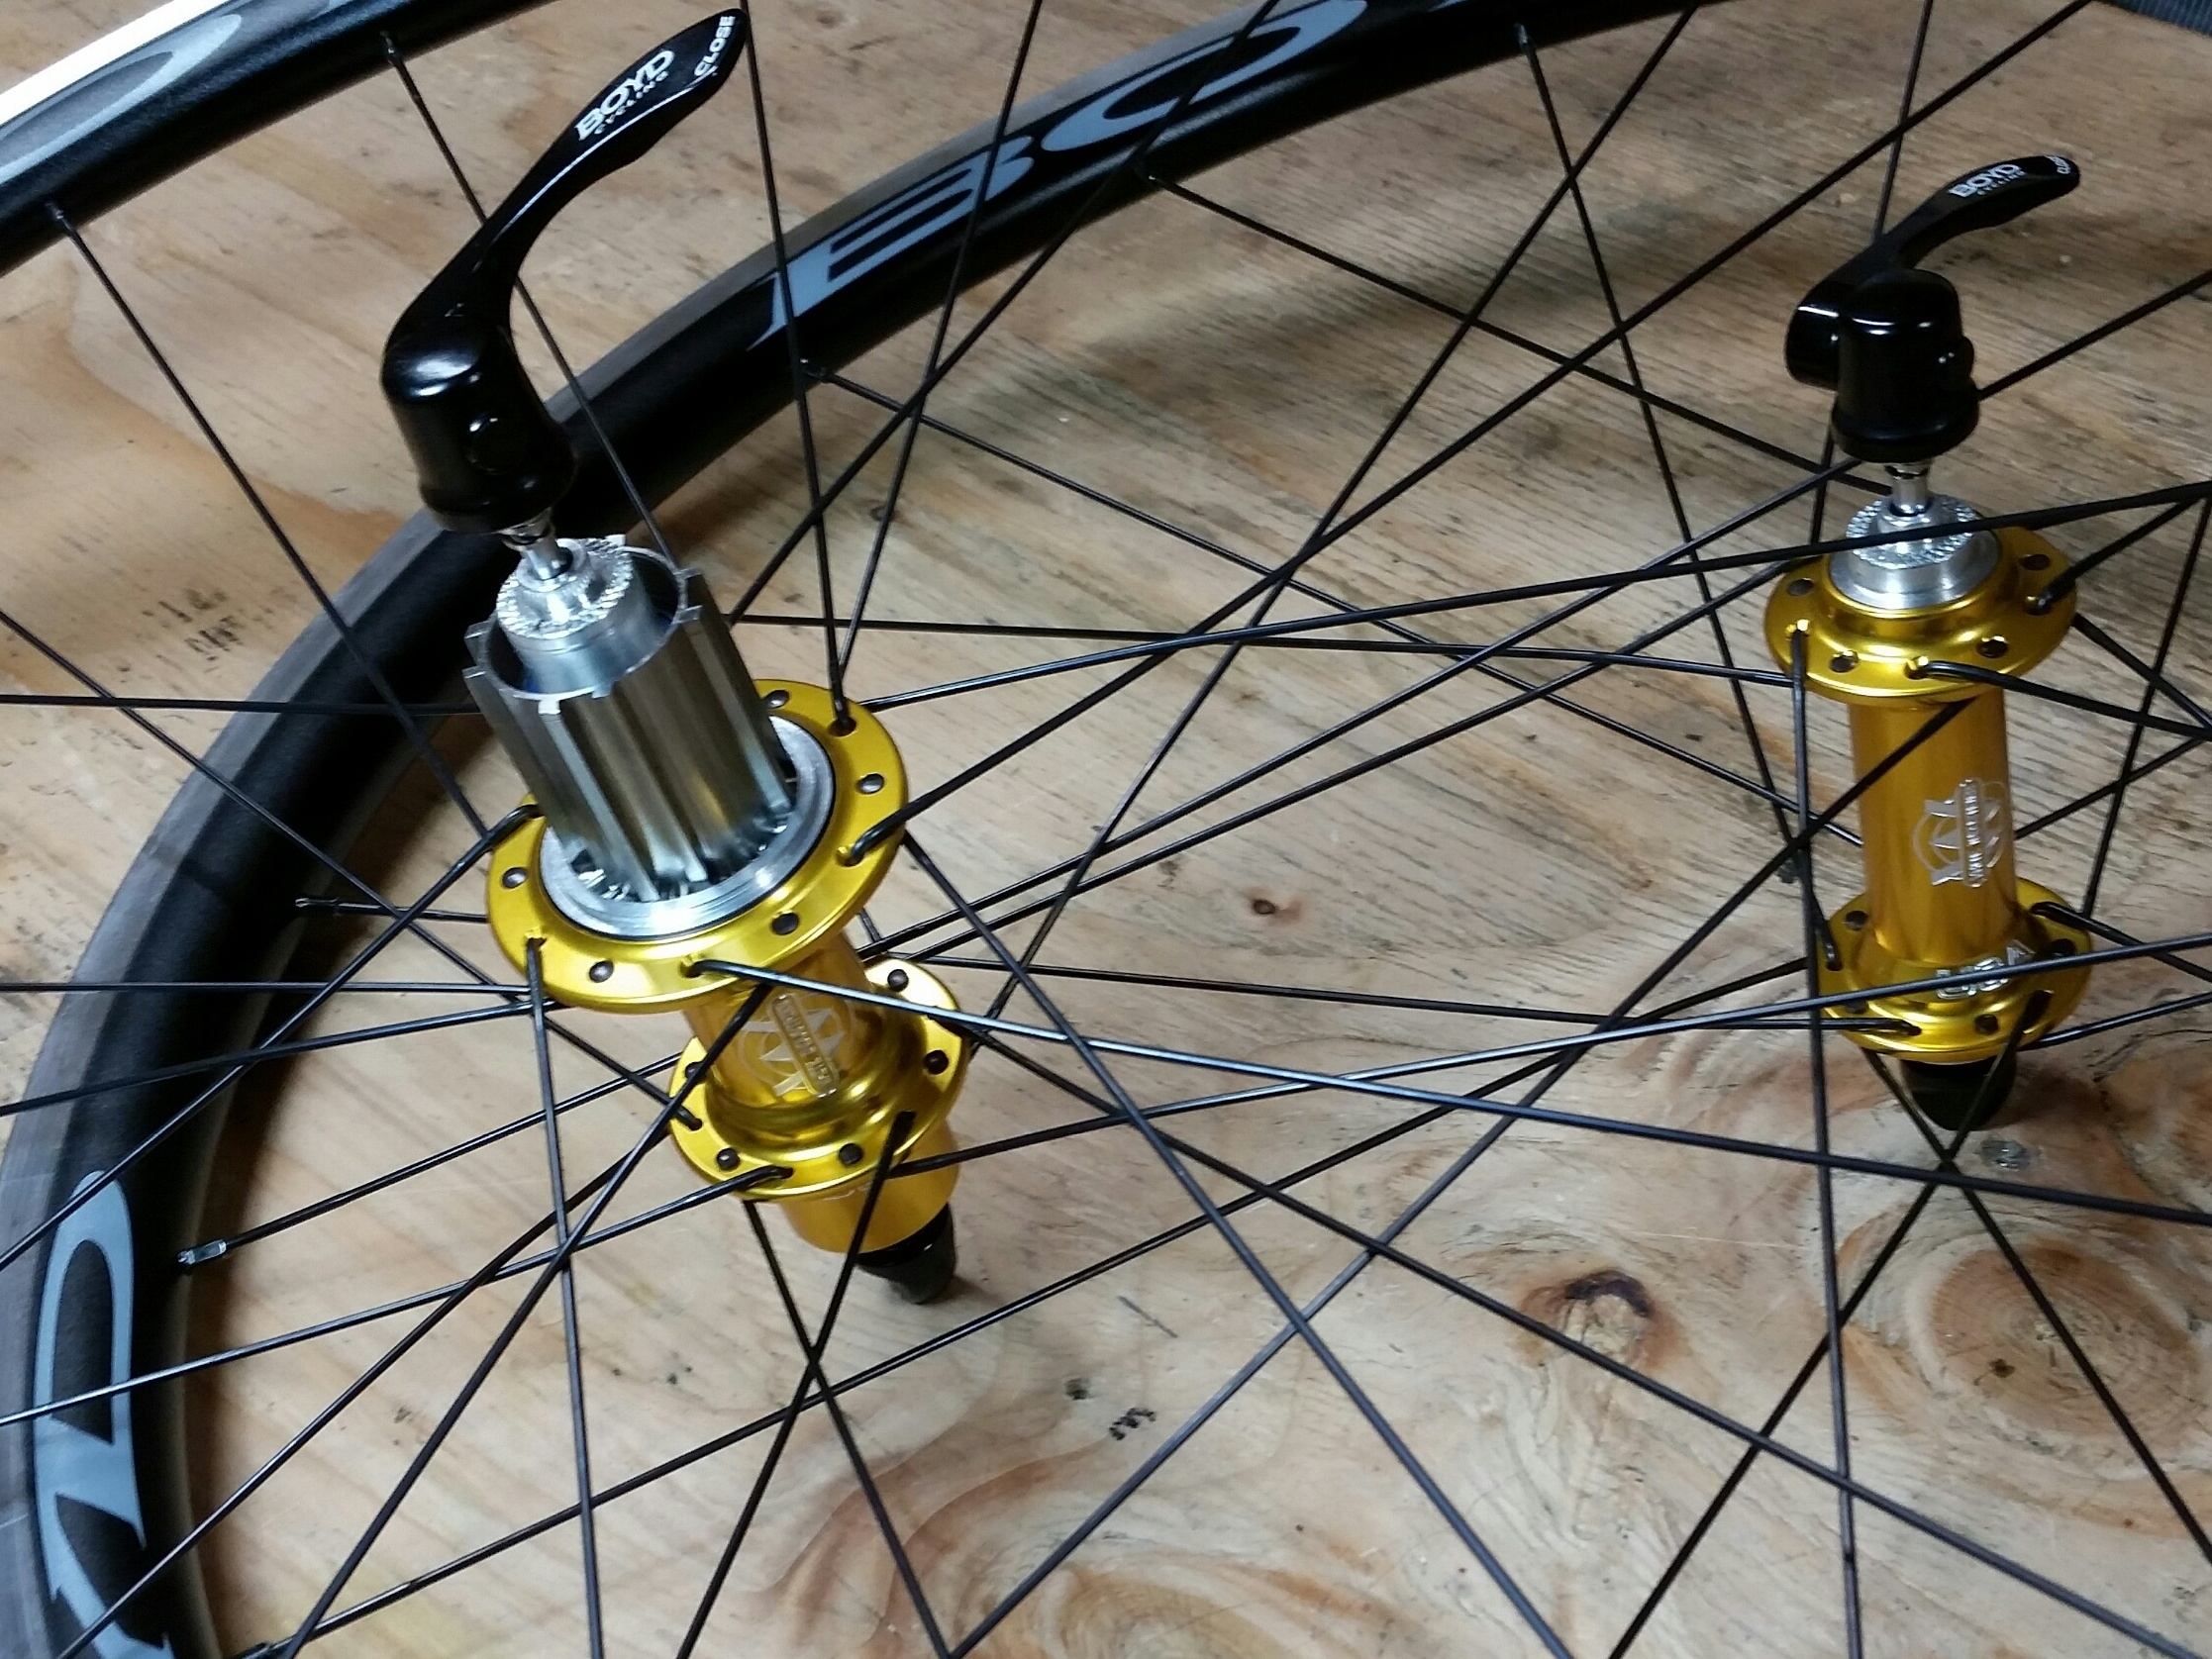 White Industries T11 hubs in gold with Campy freehub body on Boyd Altamont rims